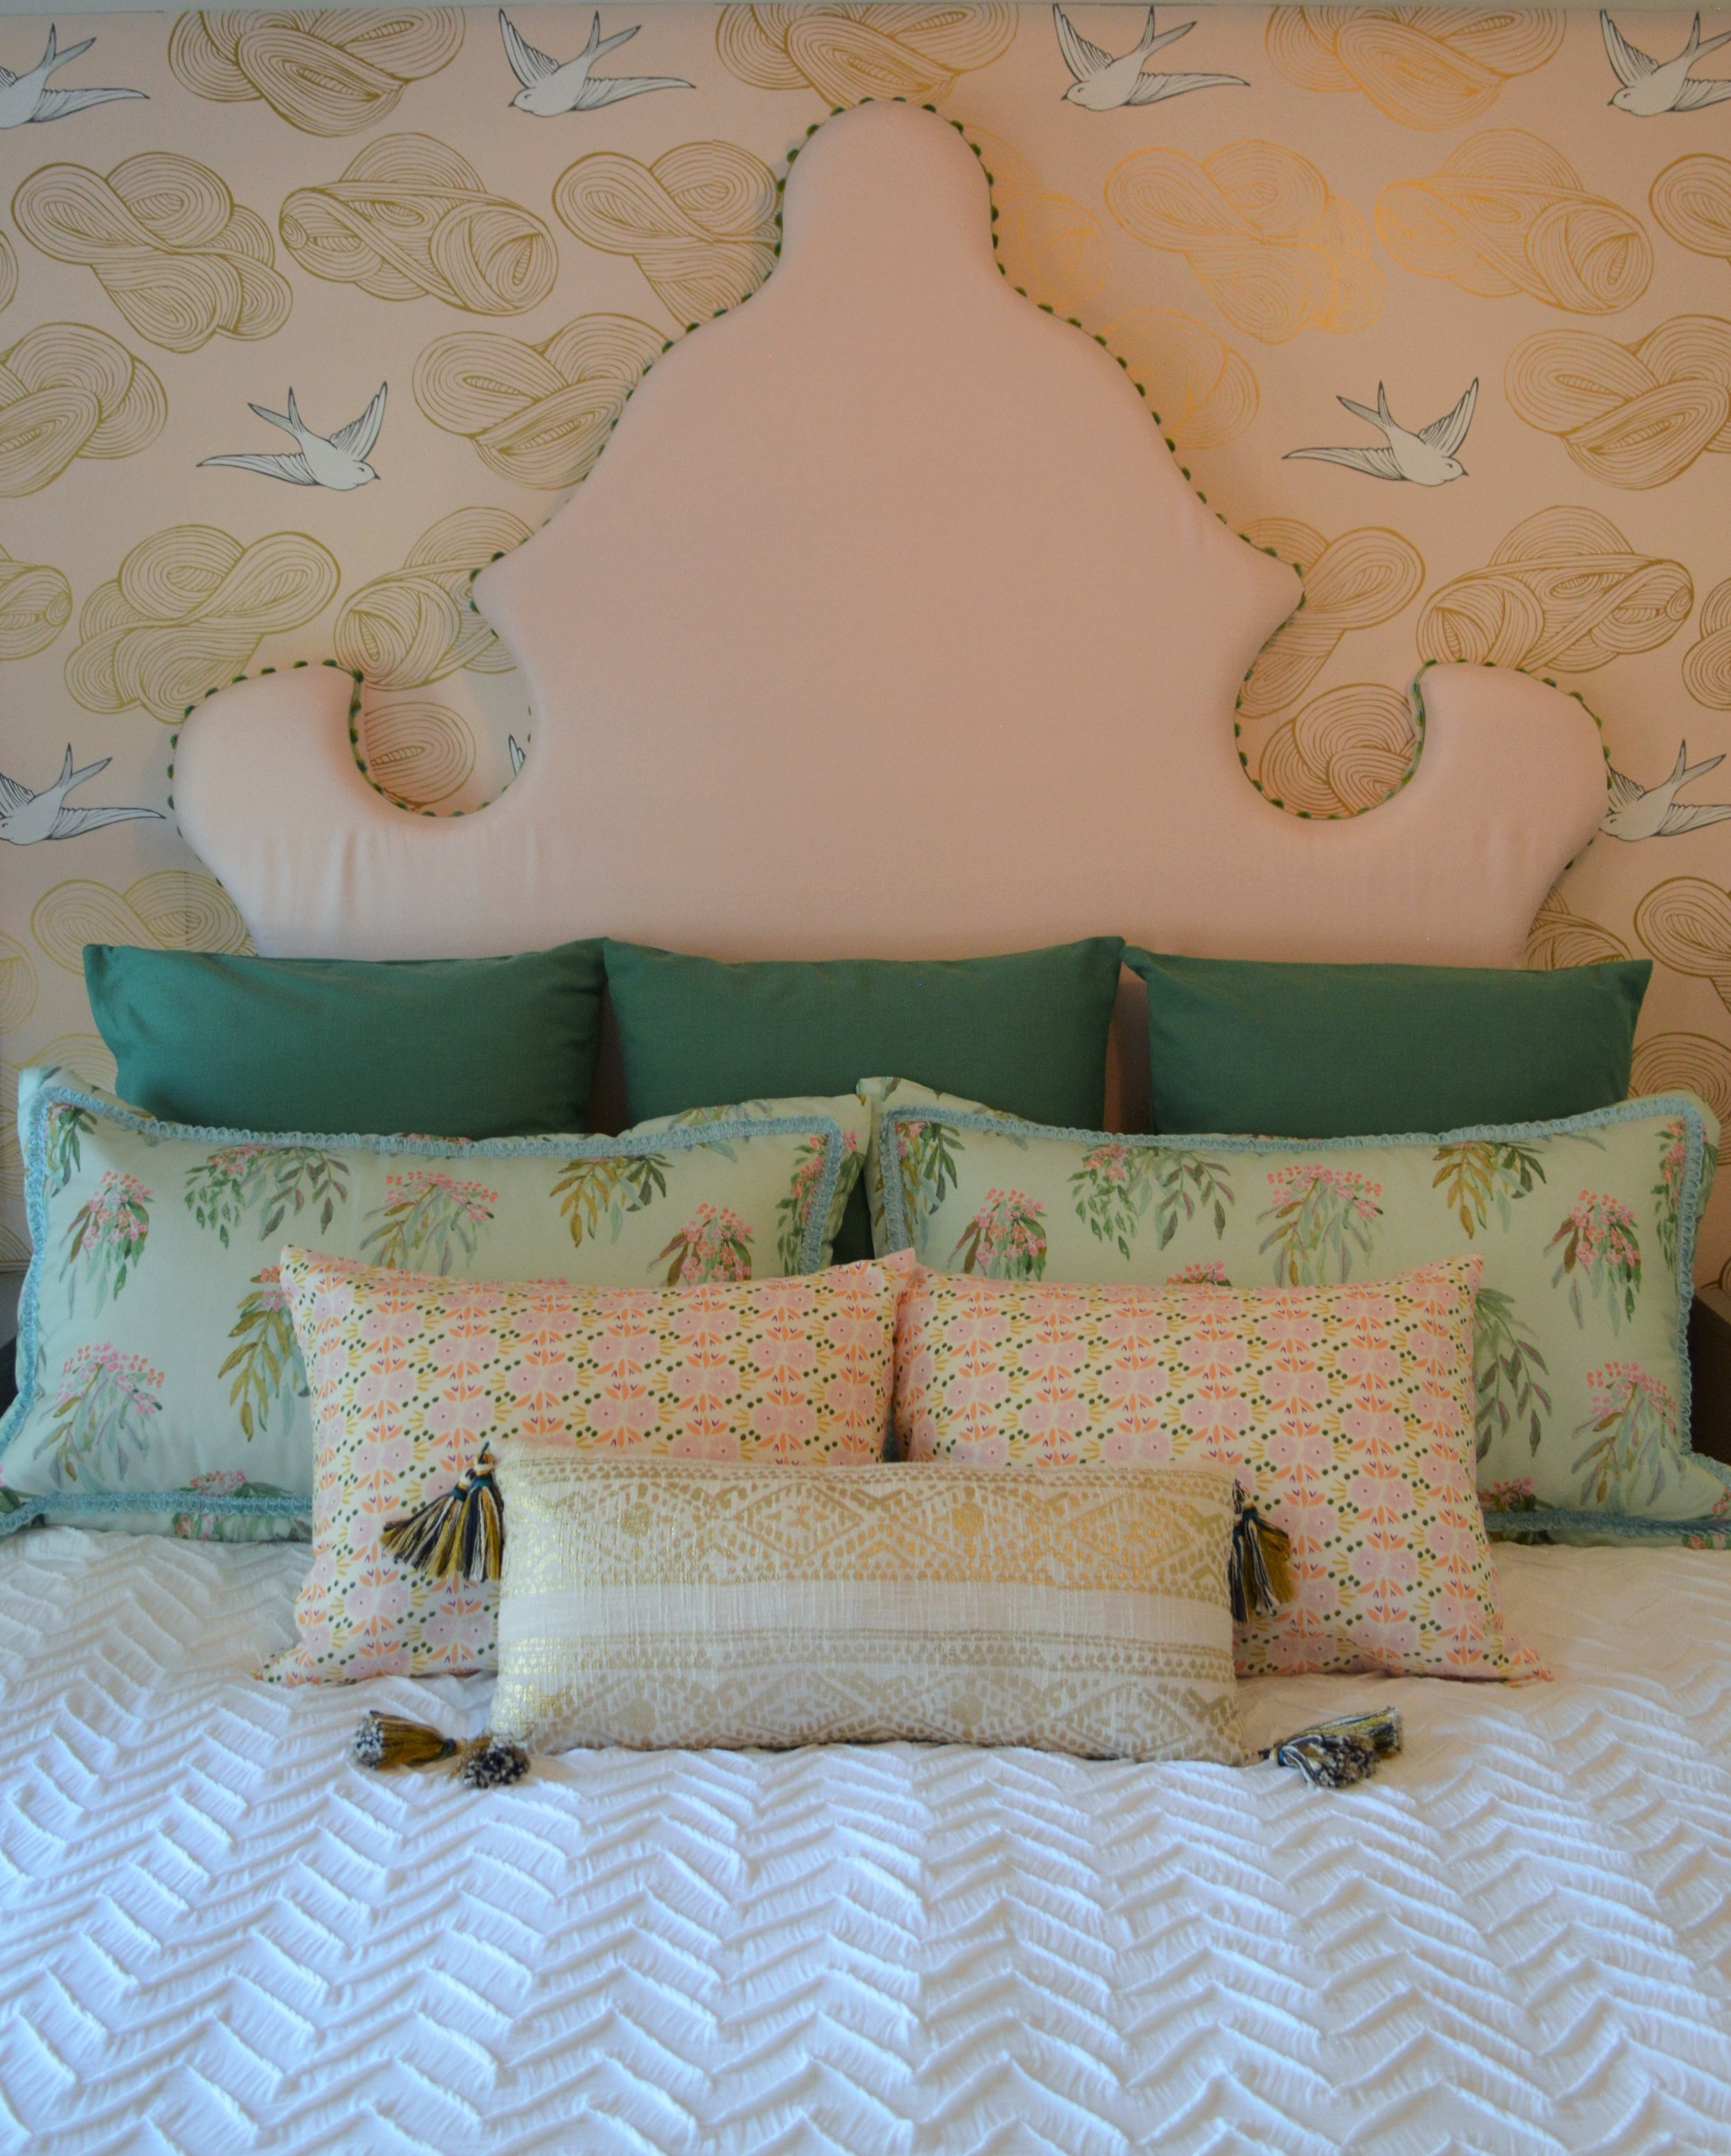 Our headboard is complemented by fabrics by Lulie Wallace